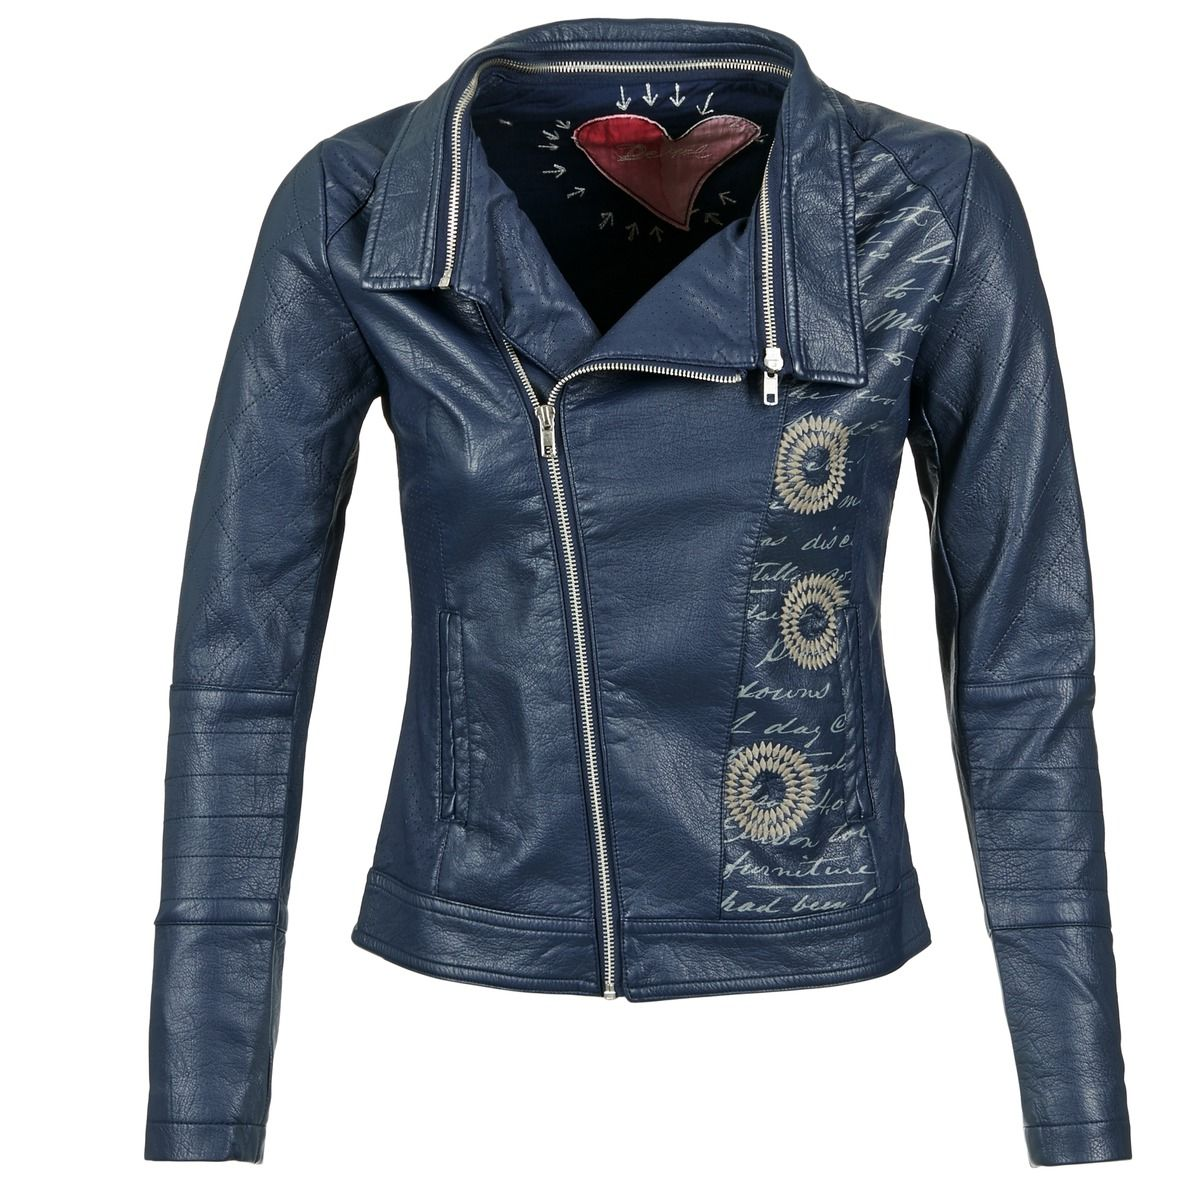 veste blazer desigual nifade marine prix promo blouson femme spartoo blousons. Black Bedroom Furniture Sets. Home Design Ideas